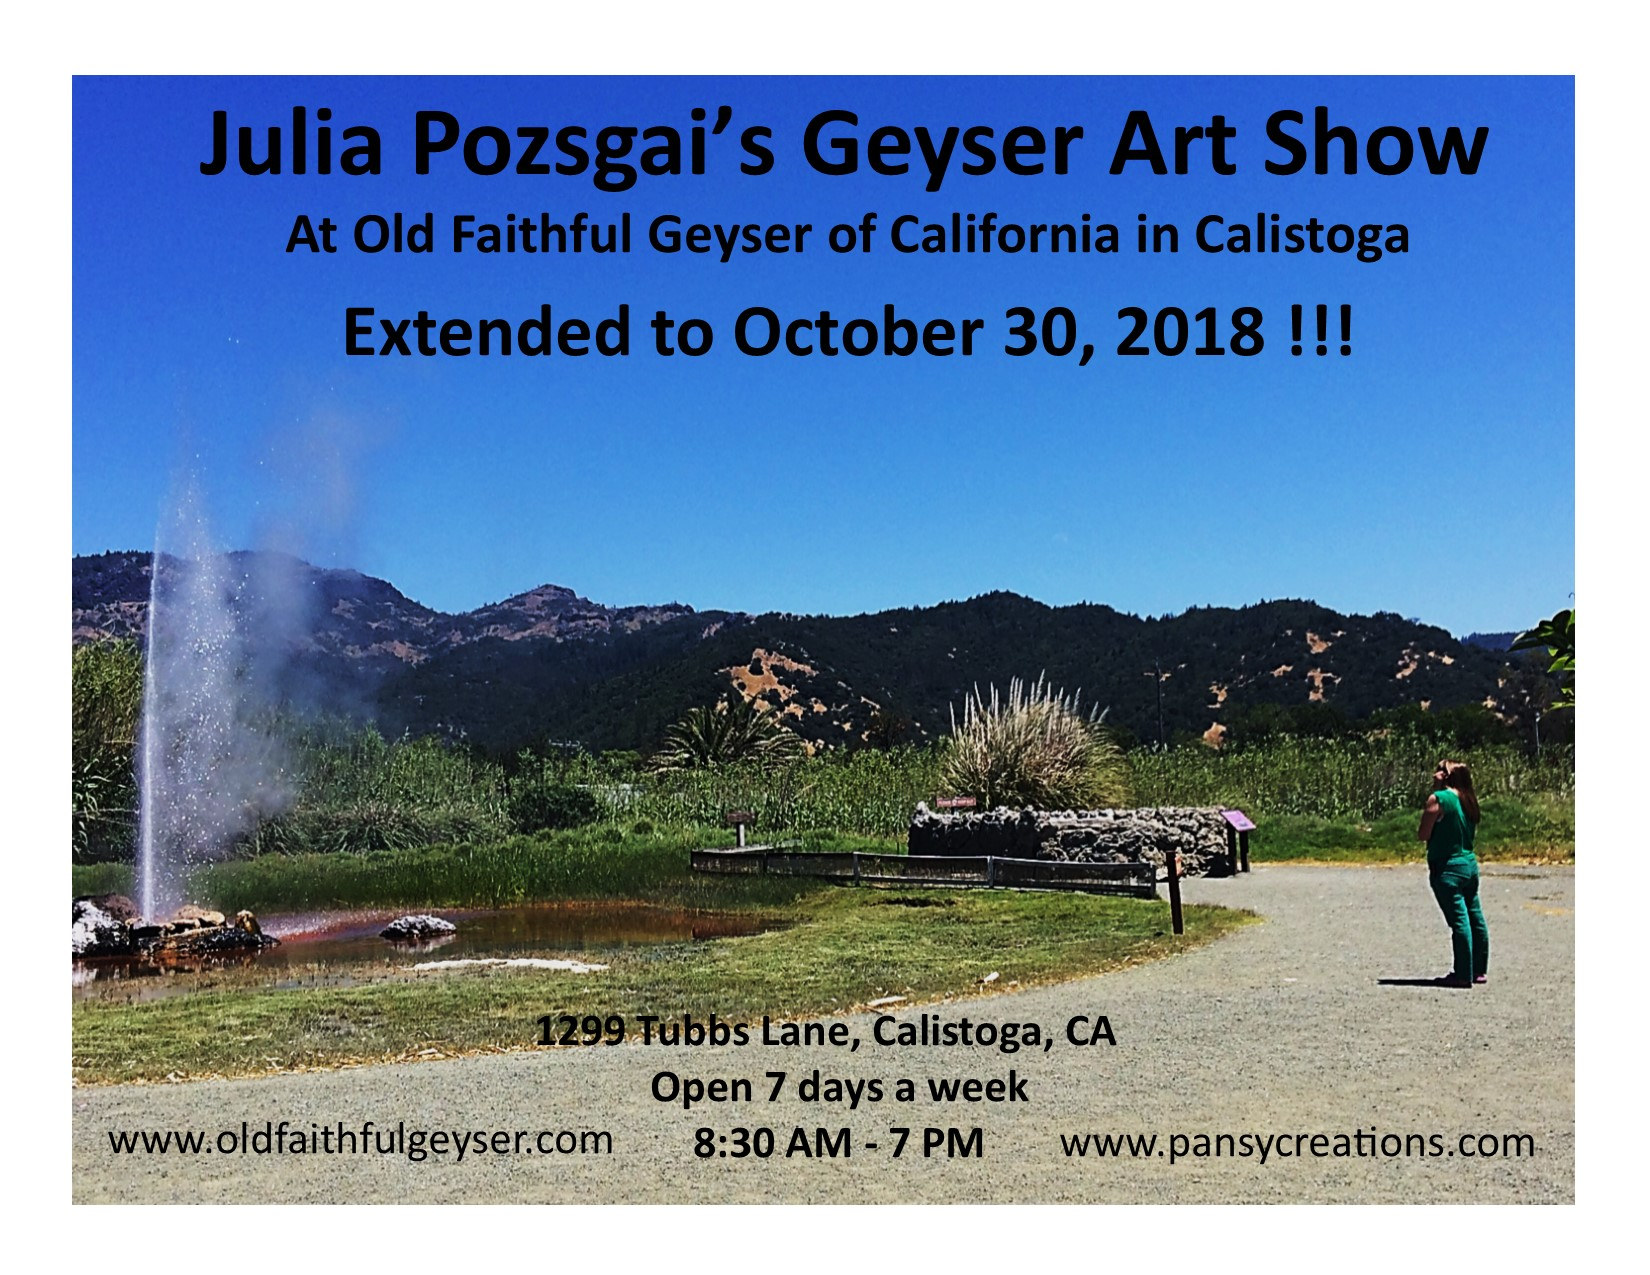 GEYSER ART SHOW POSTER w Julia at Geyser updated for extended show Oct 2018.jpg